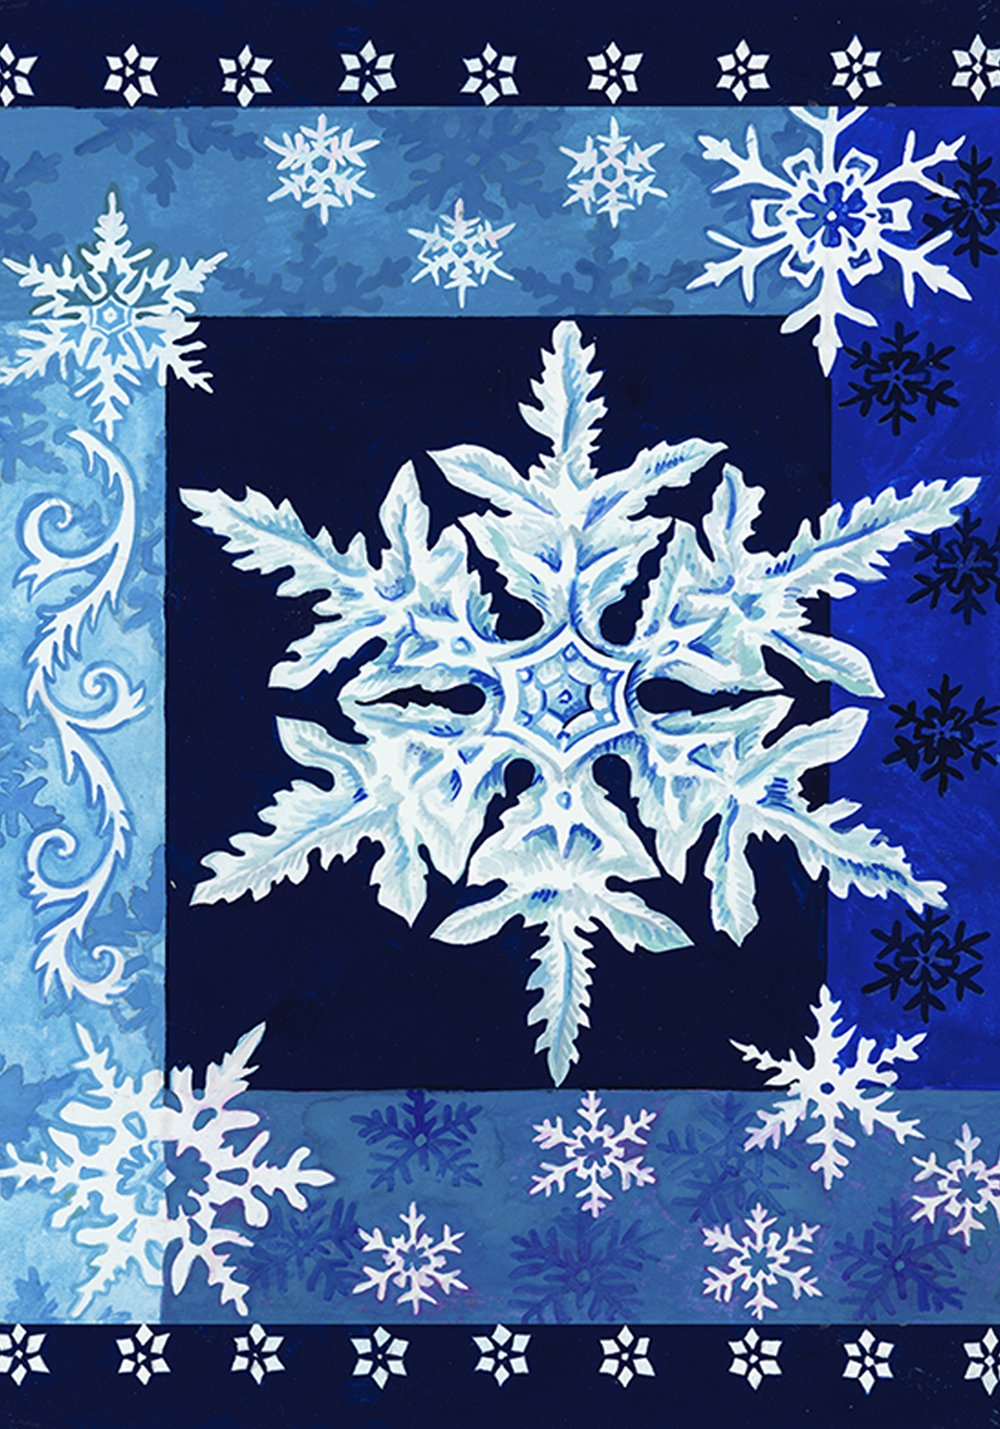 Toland Home Garden Cool Snowflakes 28 x 40 Inch Decorative Blue Winter Snowflake House Flag - 102532